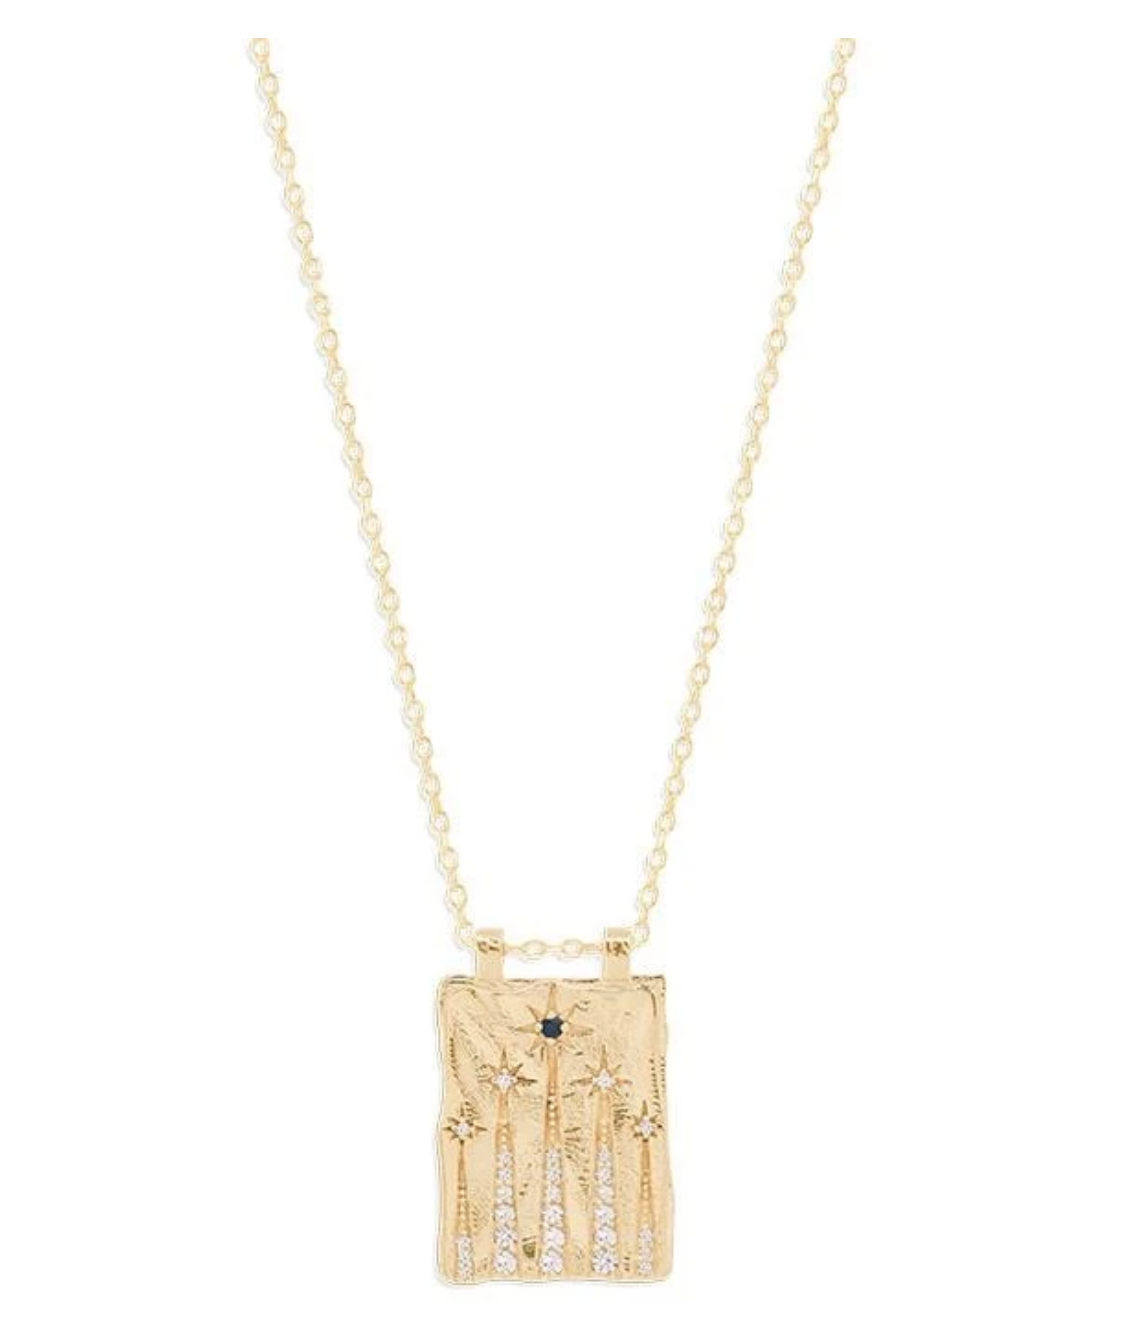 Charlotte Gold Magic of You Necklace - Gold